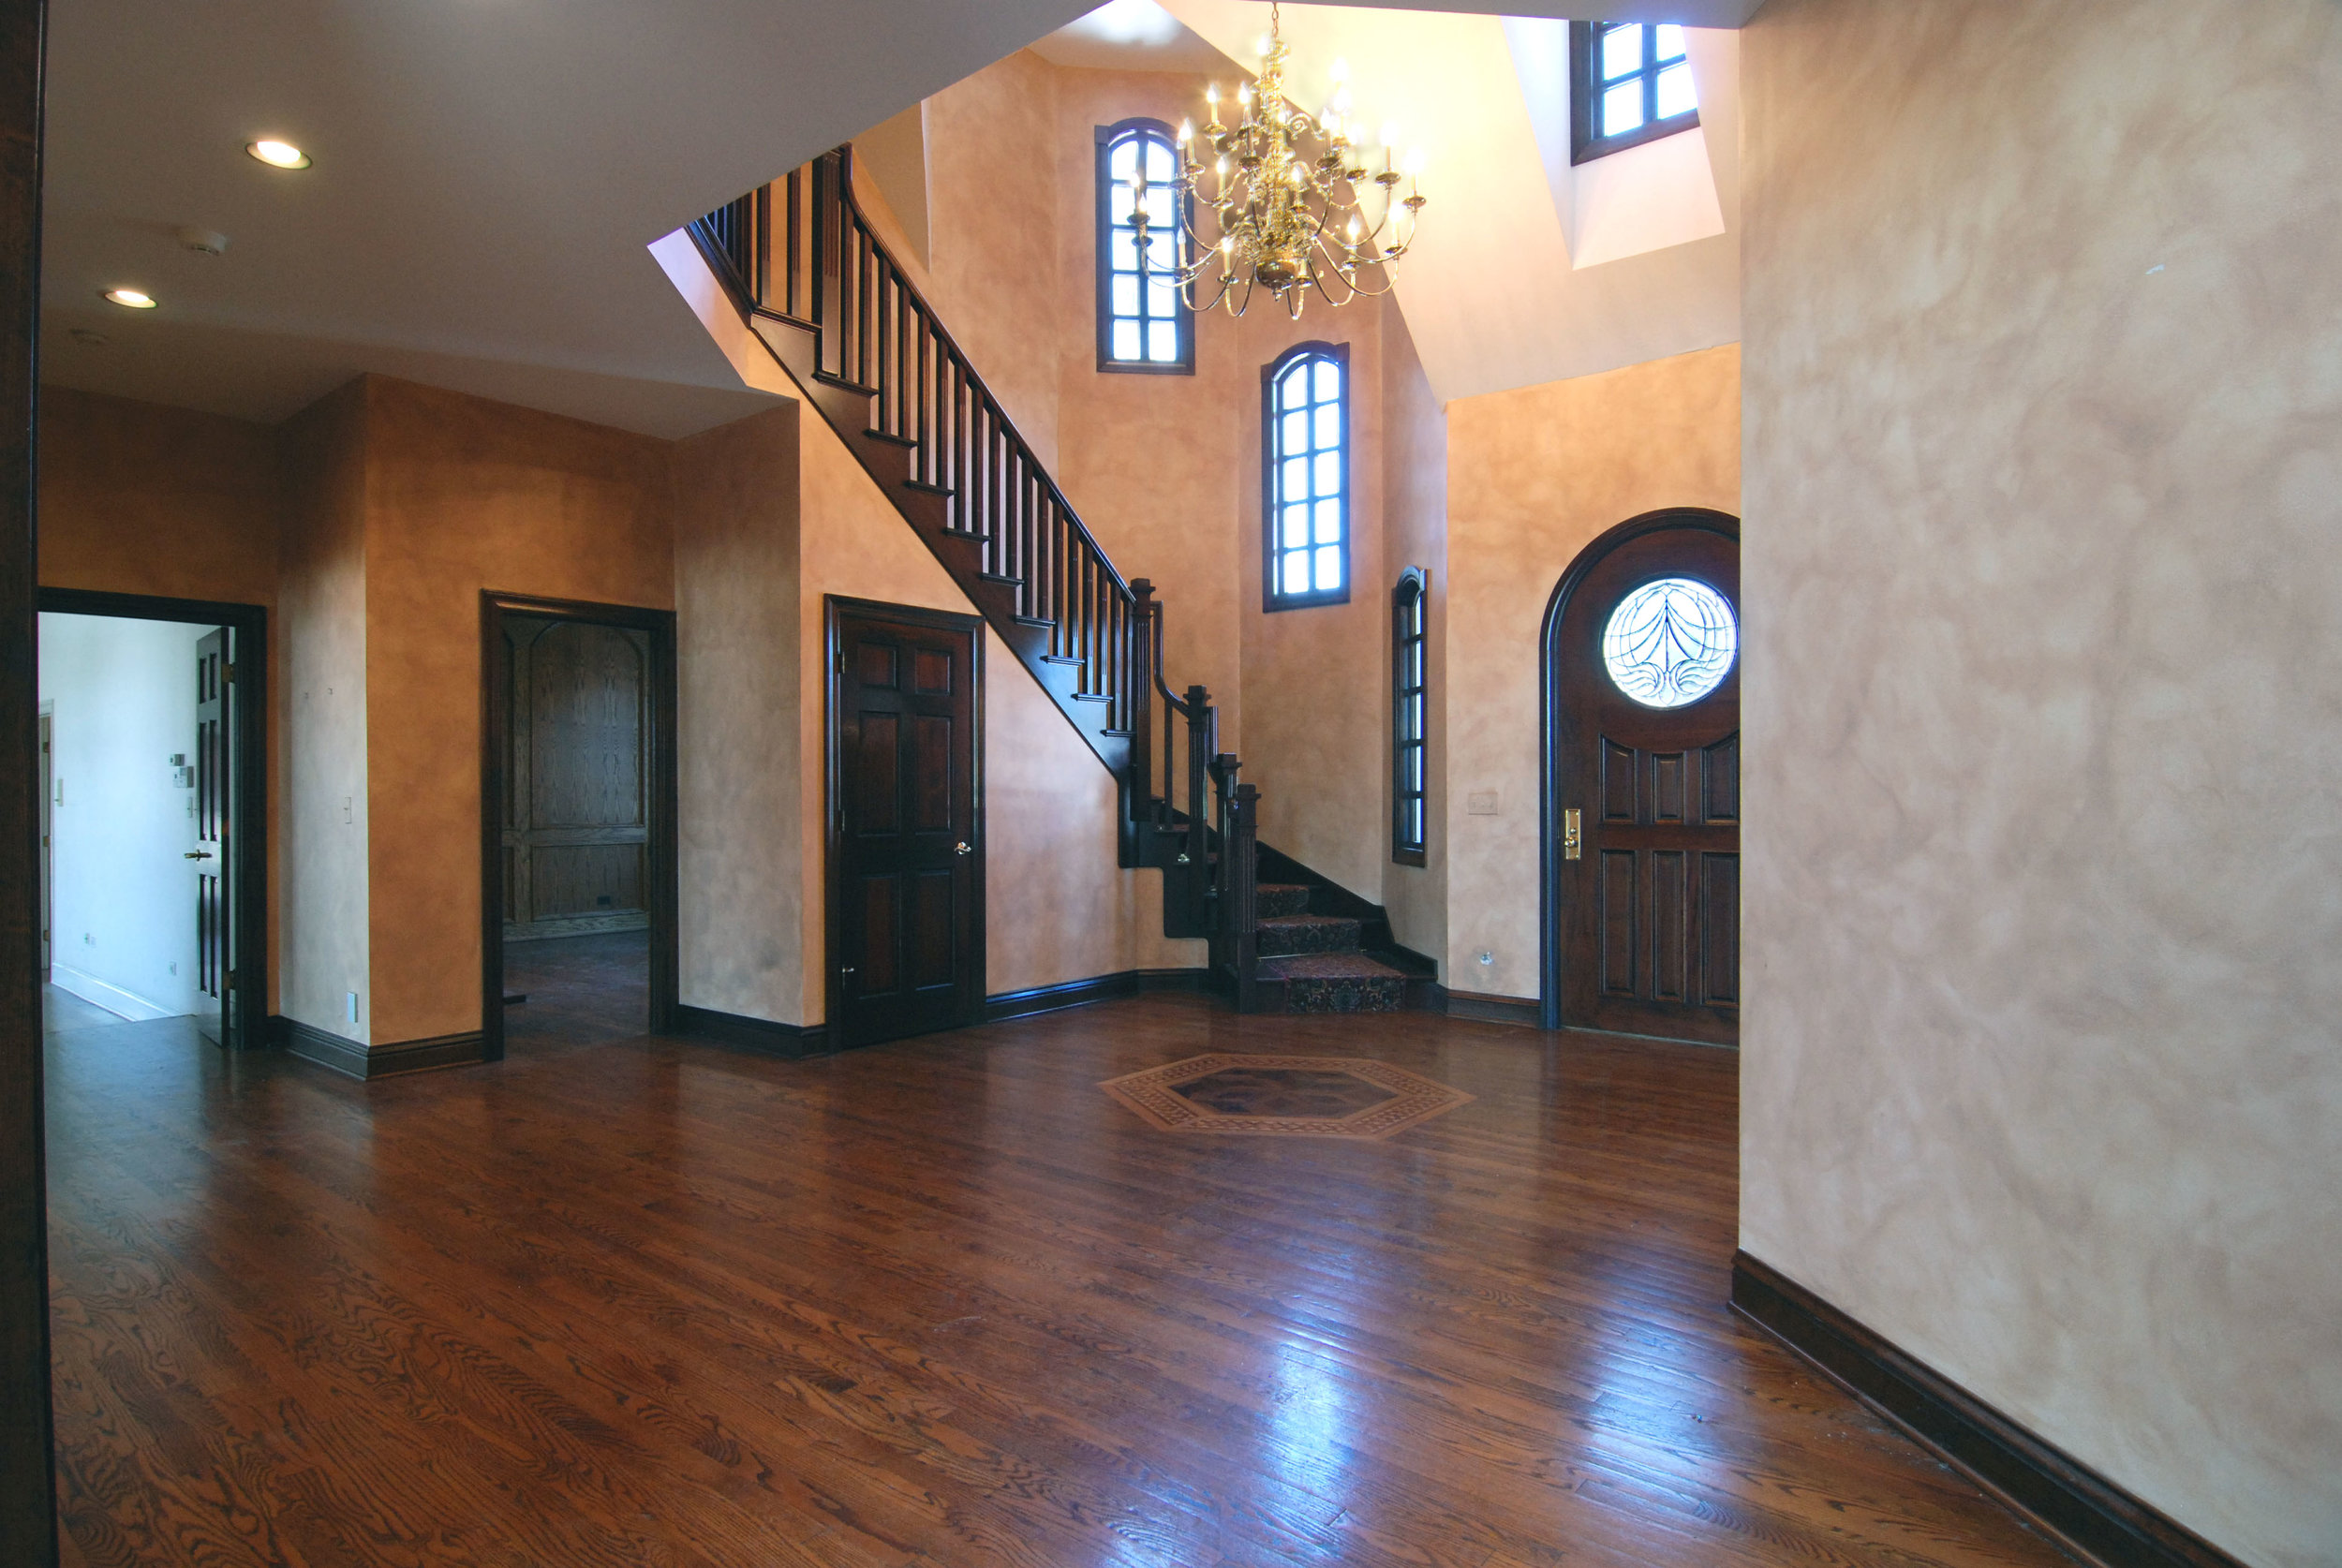 Outdated Naperville Foyer in Larger Custom Home Built in the Early 1990's. Ready for Updating & Remodel